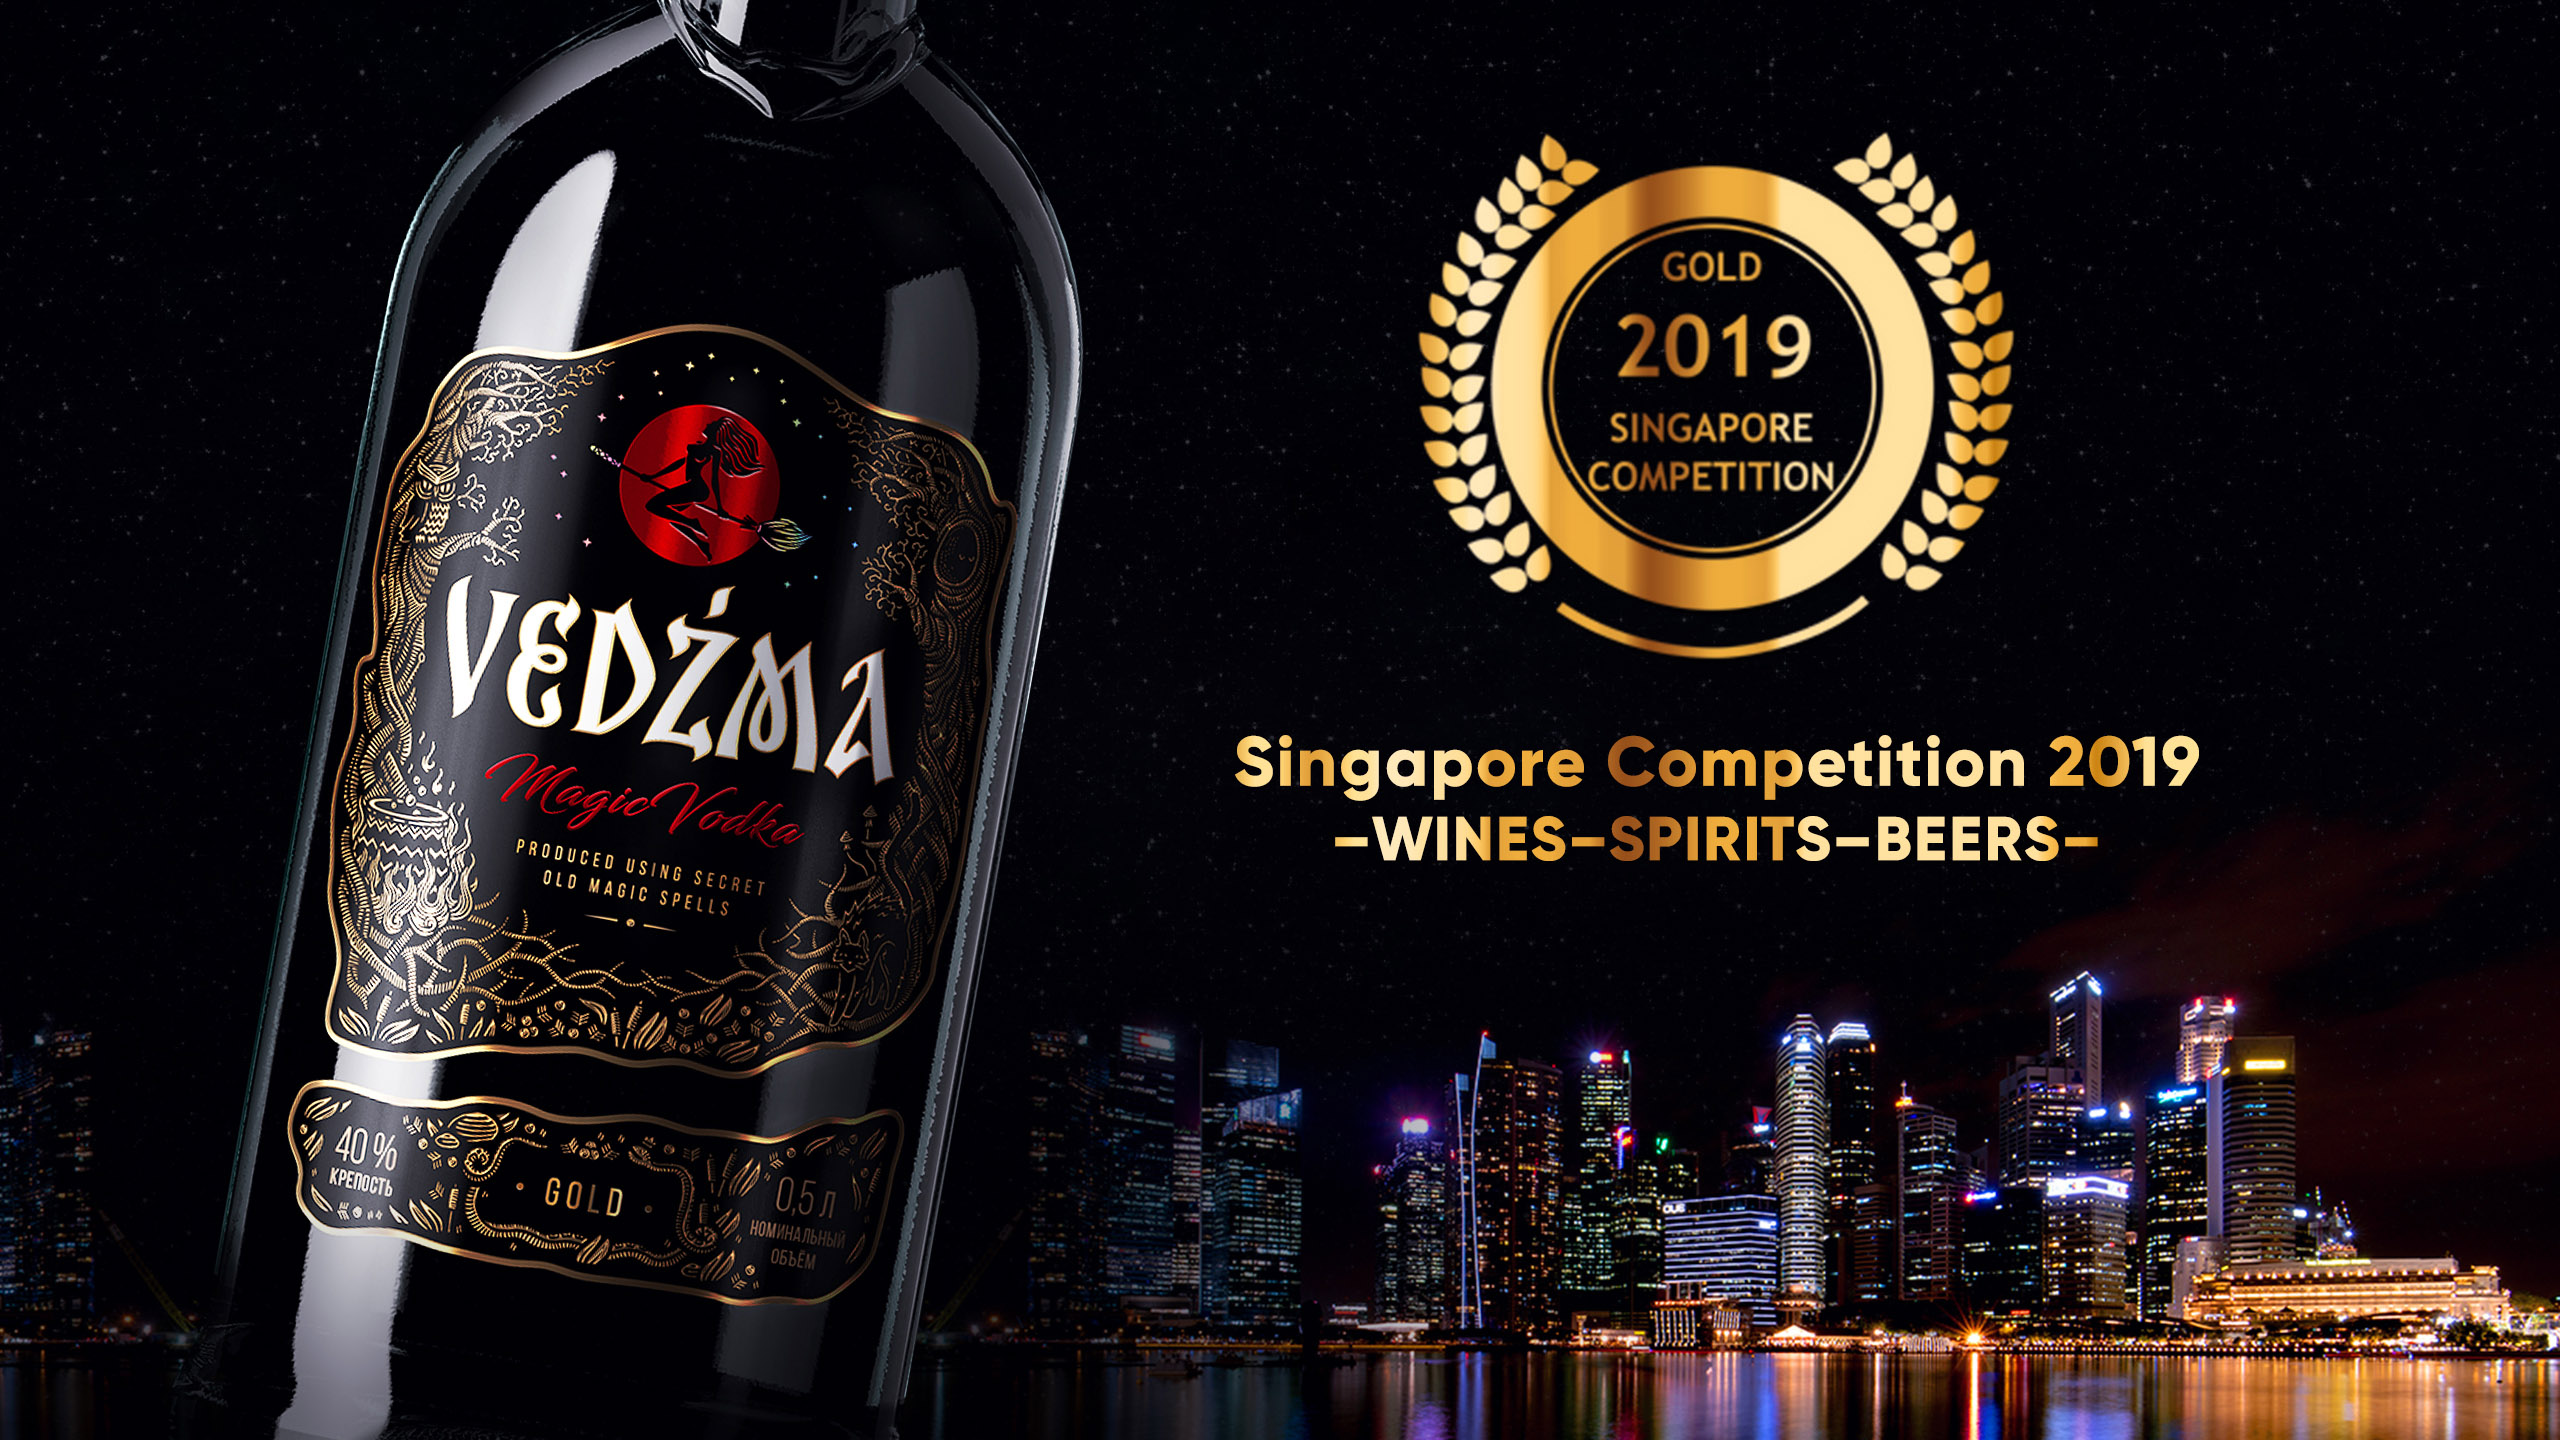 VEDZMA SINGAPORE COMPETITION 2019